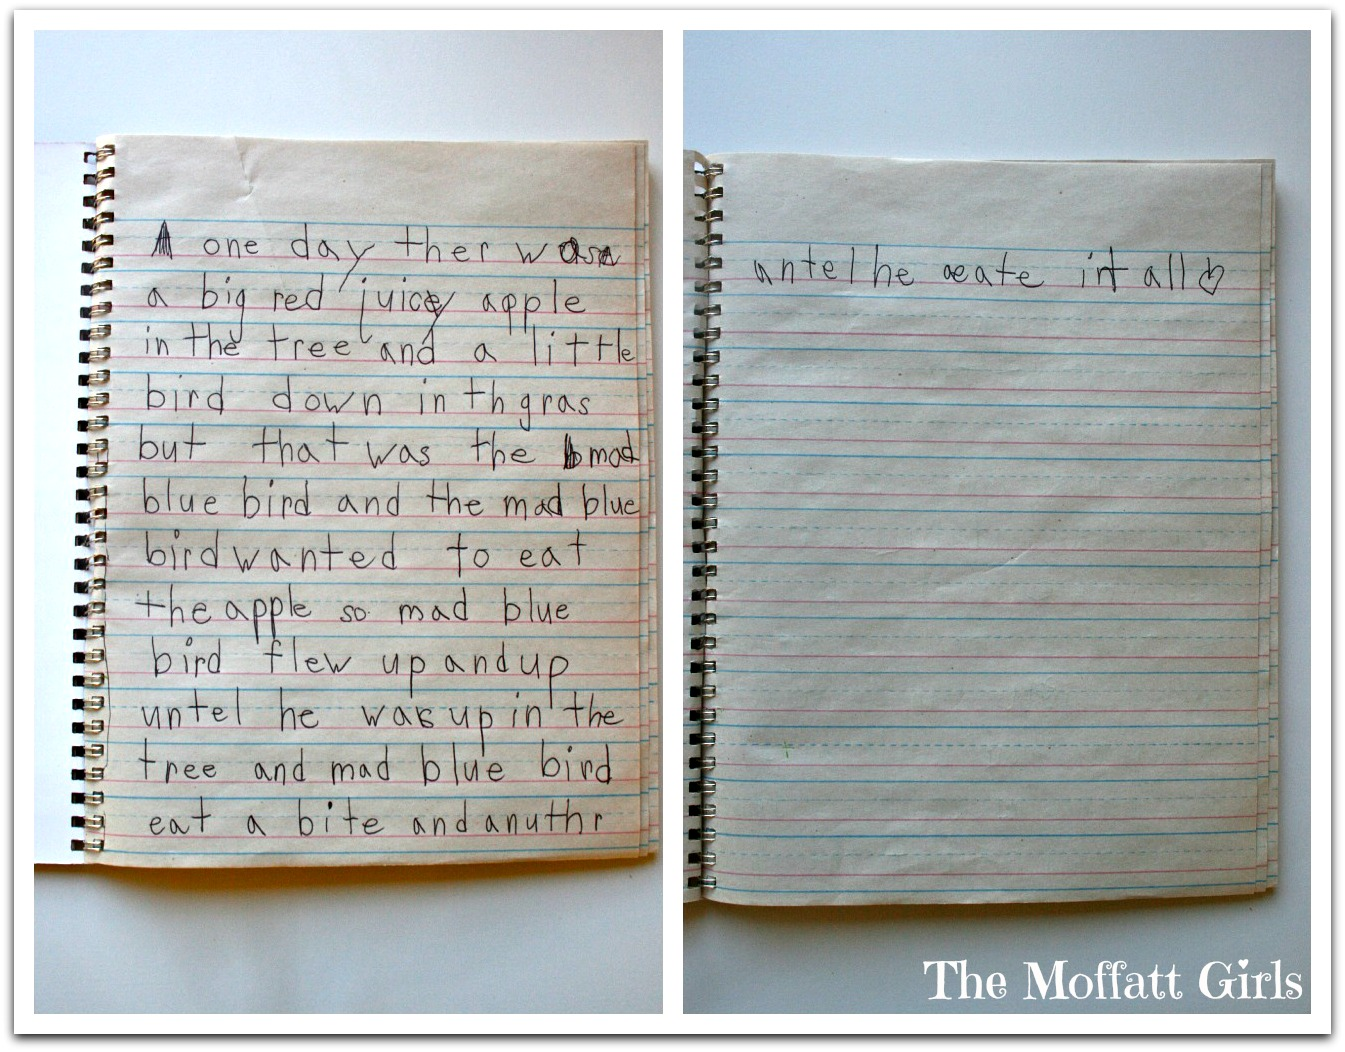 in journals writers should write about